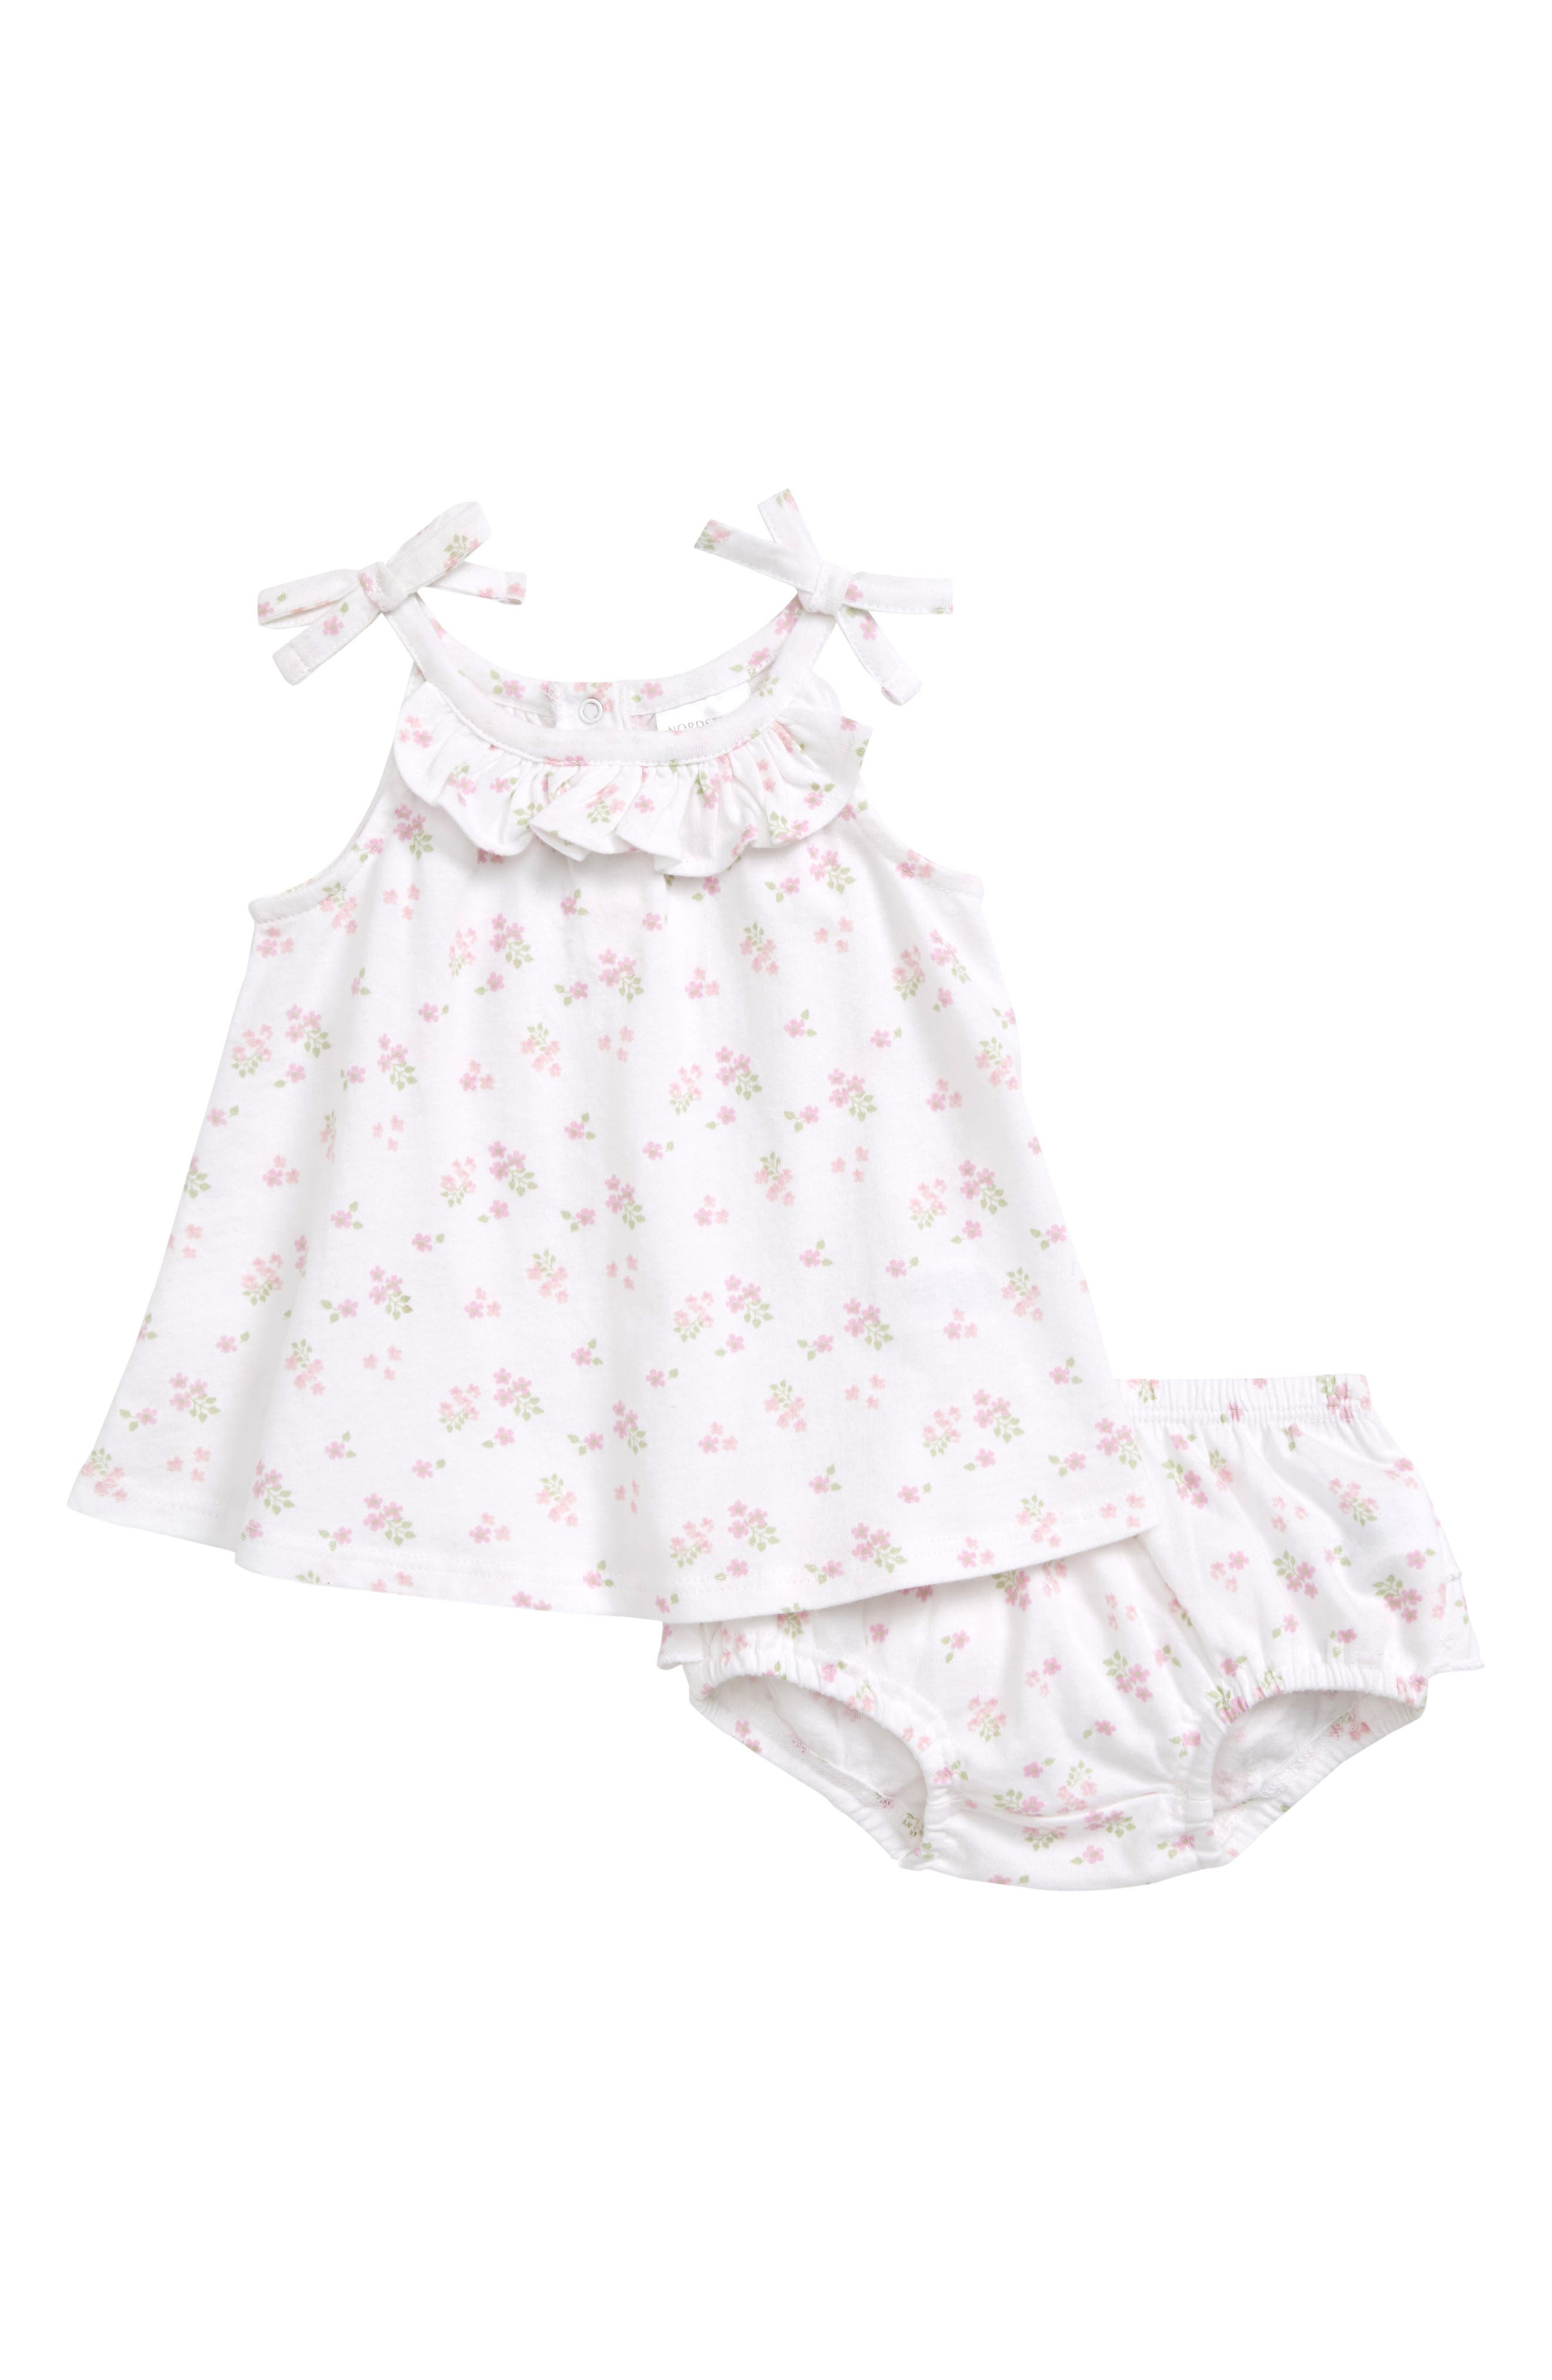 Baby Girls White Clothing Dresses Bodysuits Footies